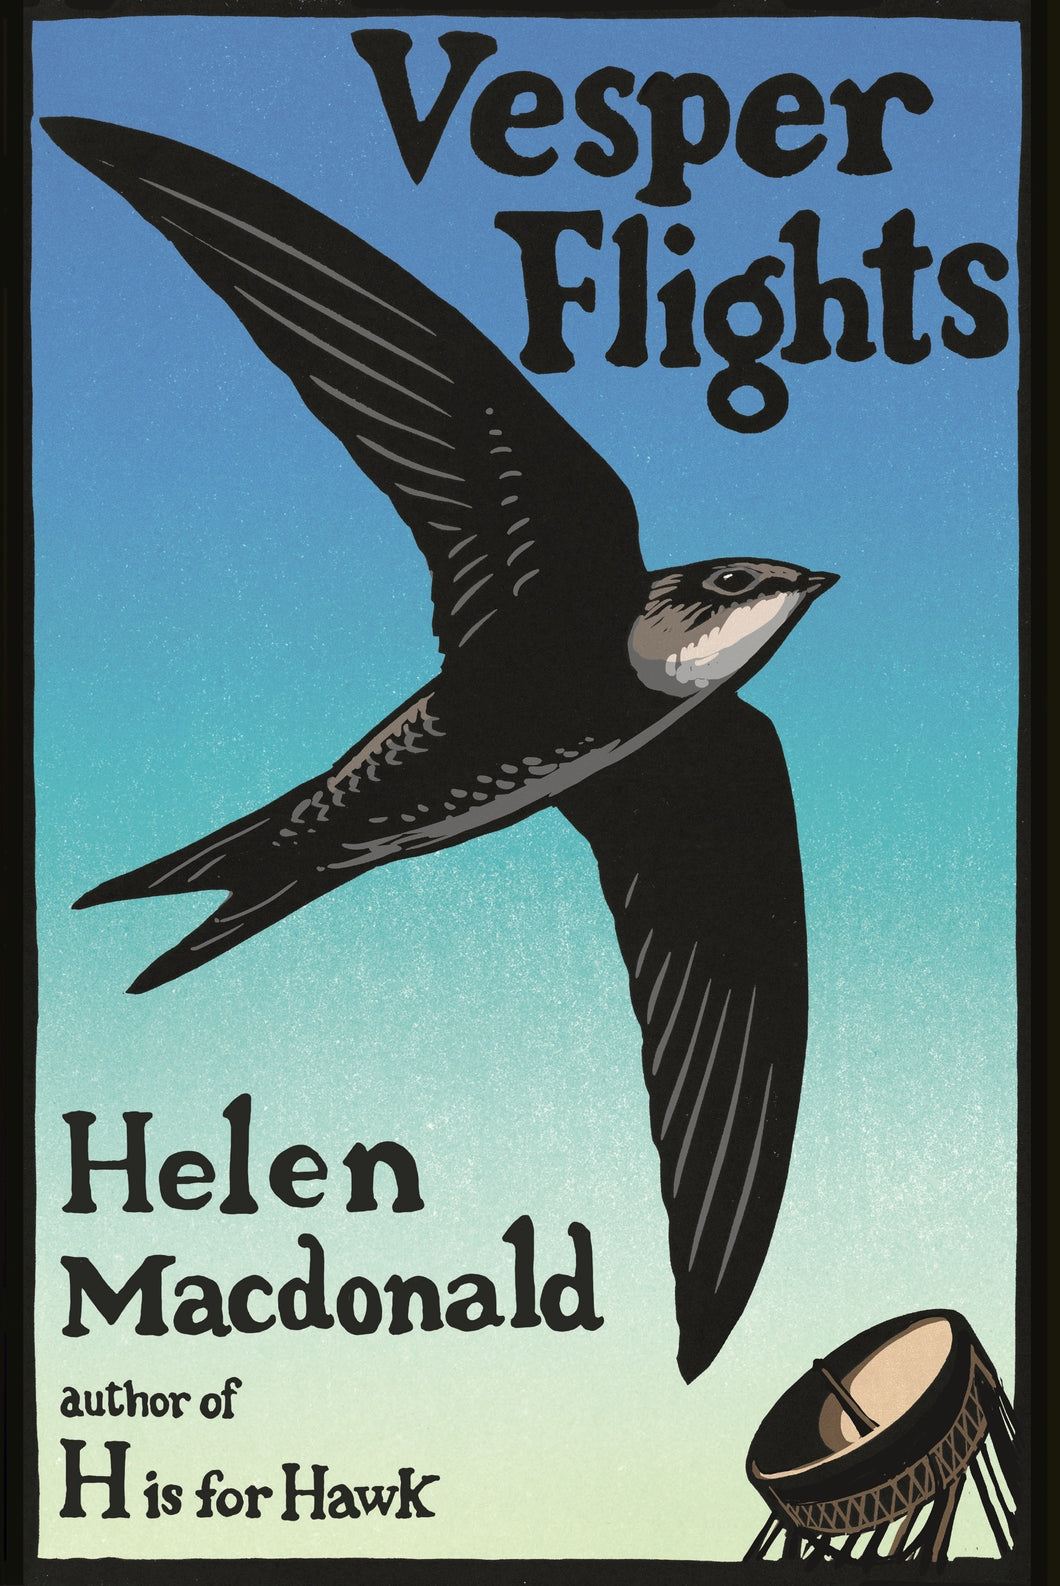 Vesper Flights by Helen Macdonald